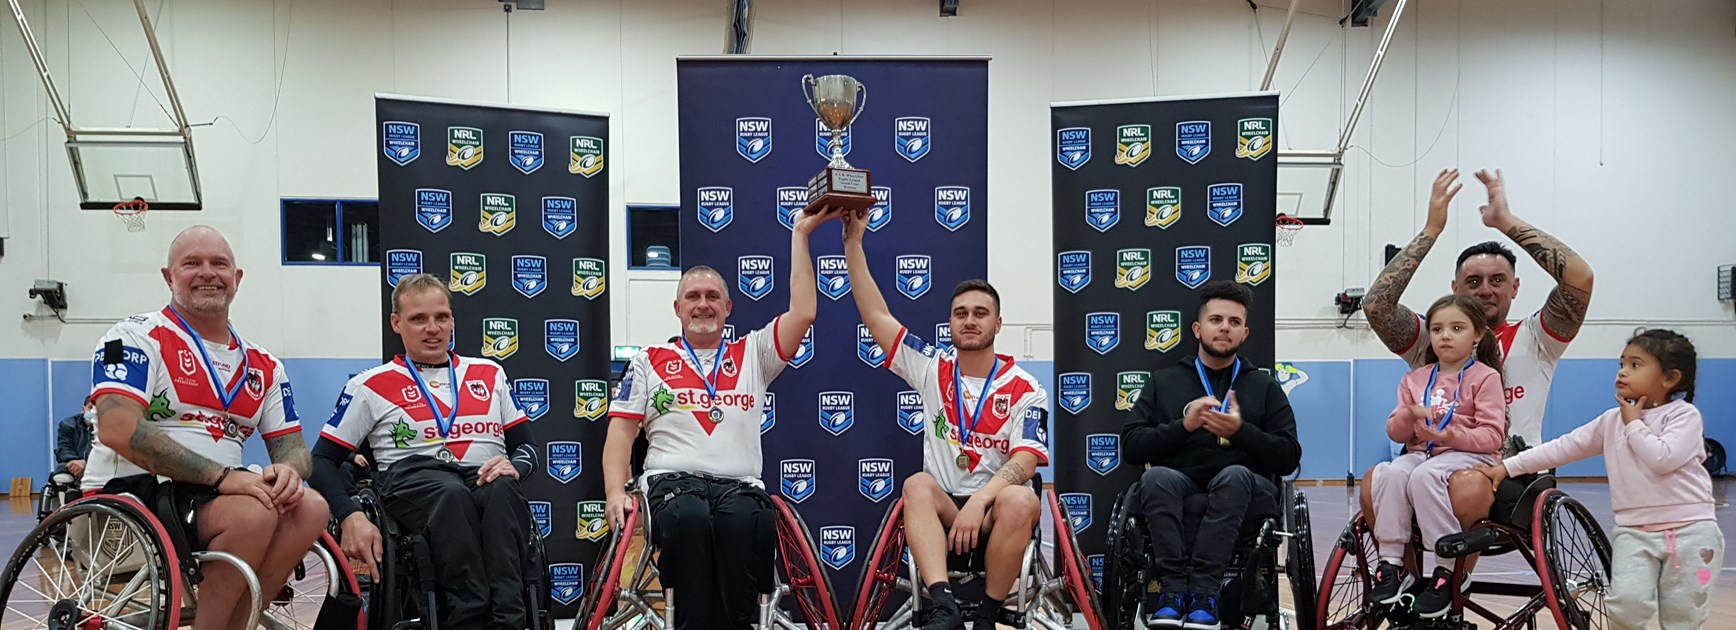 Dragons experience paves way for Grand Final win